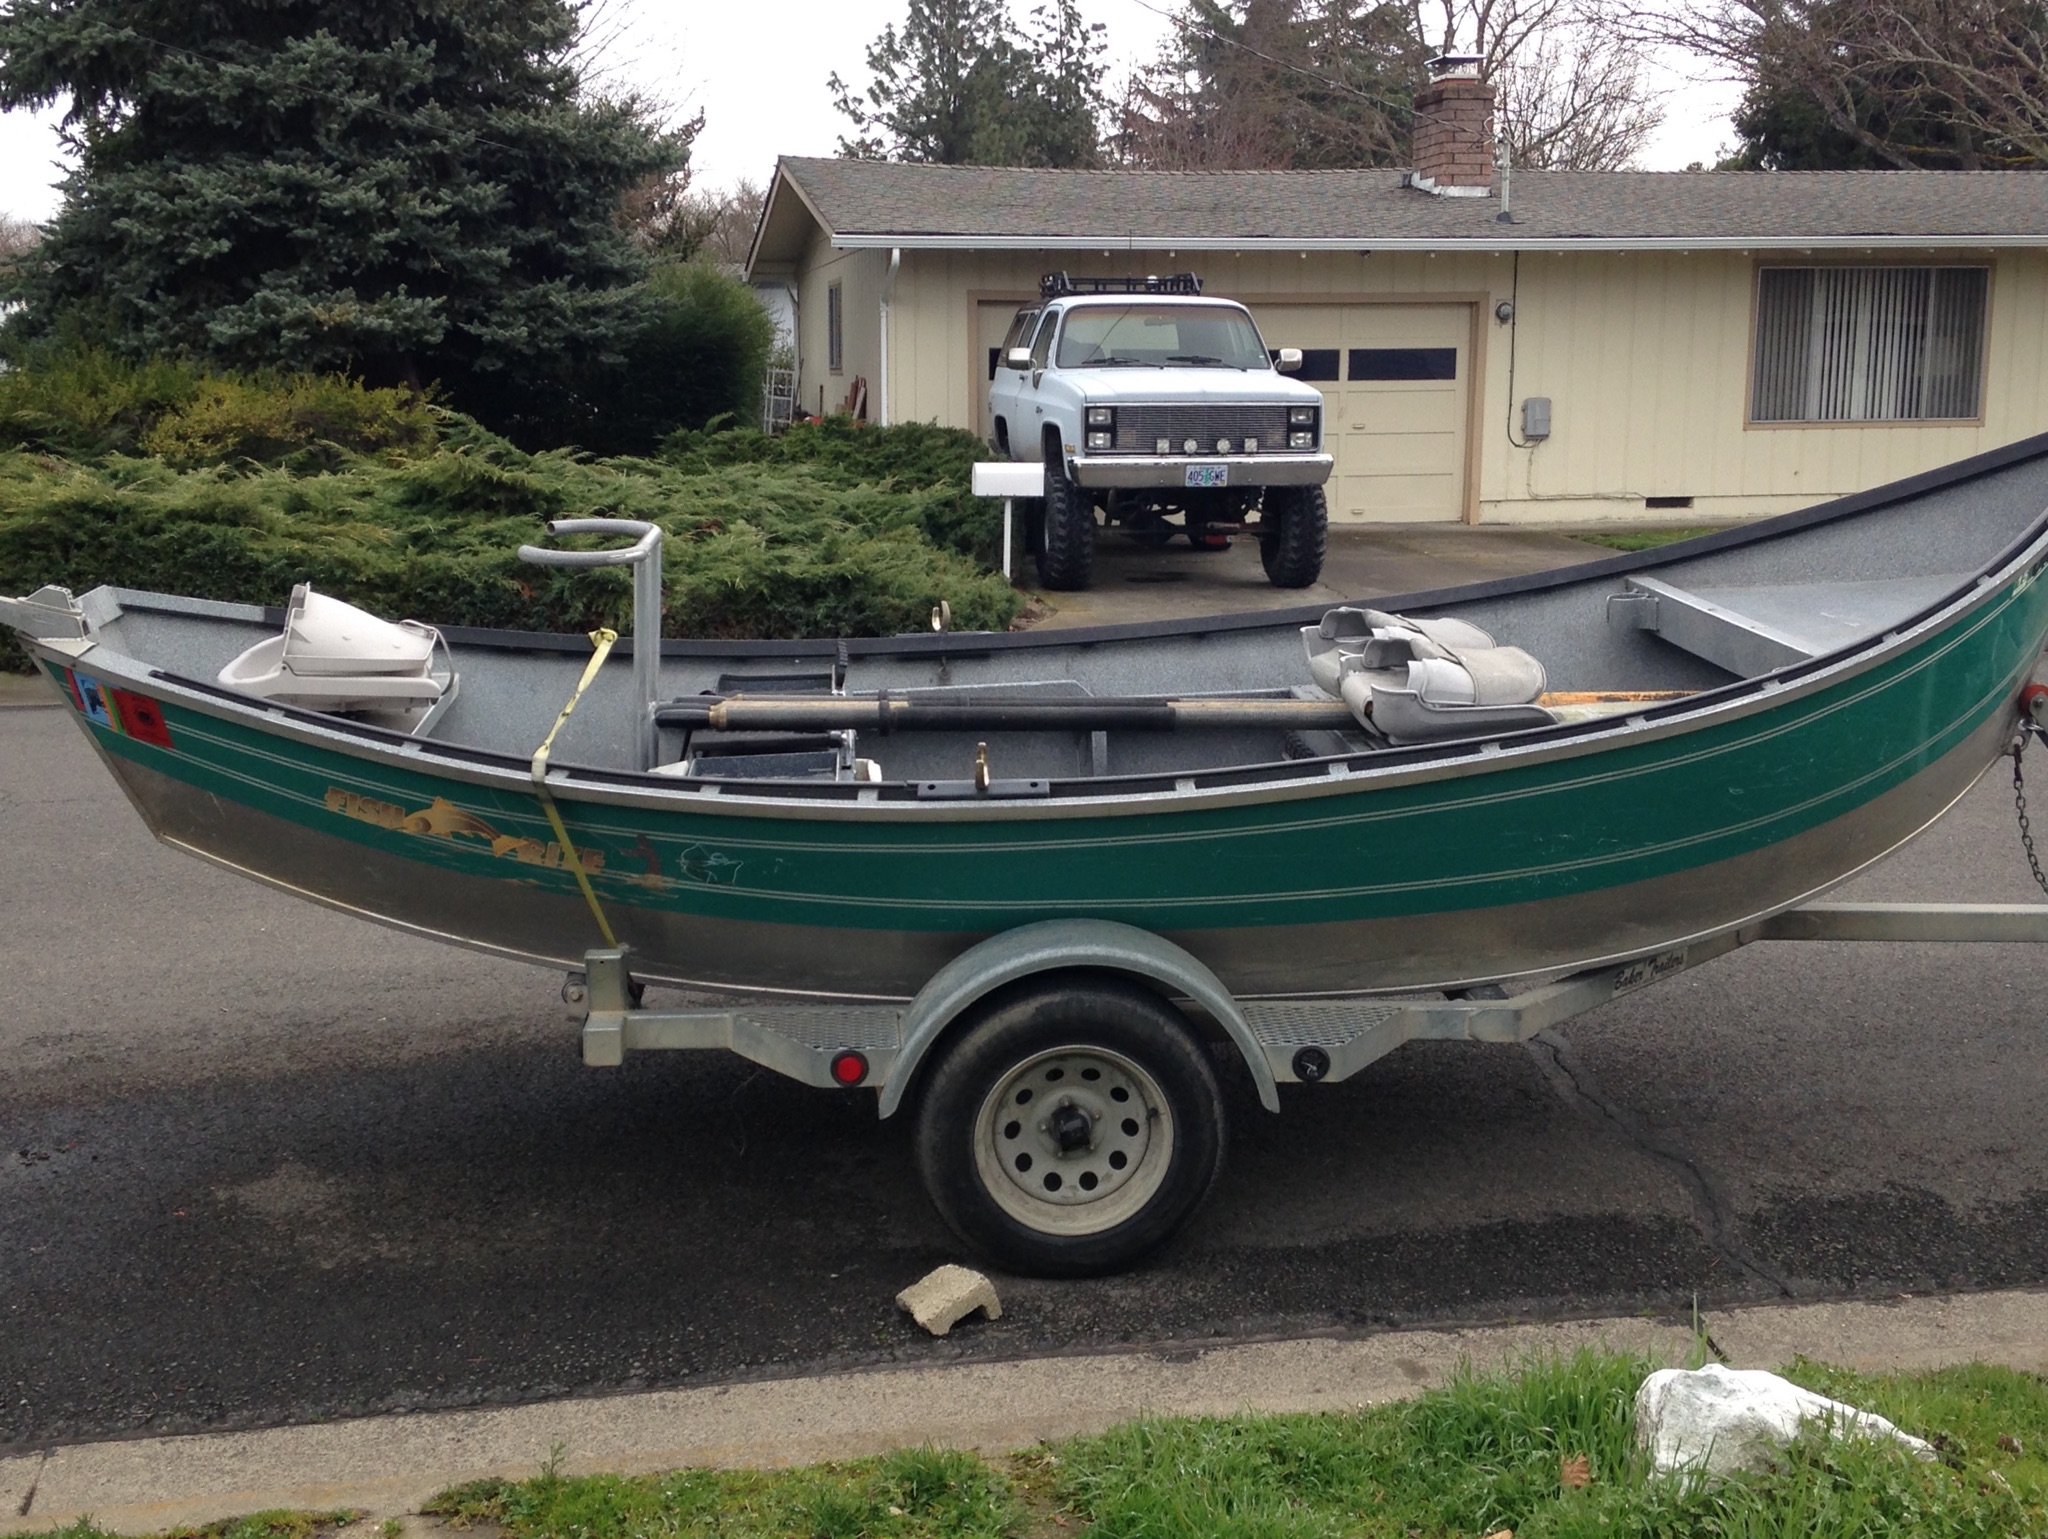 Willie Boats For Sale >> Pre-Owned Boats for Sale - Willie Boats